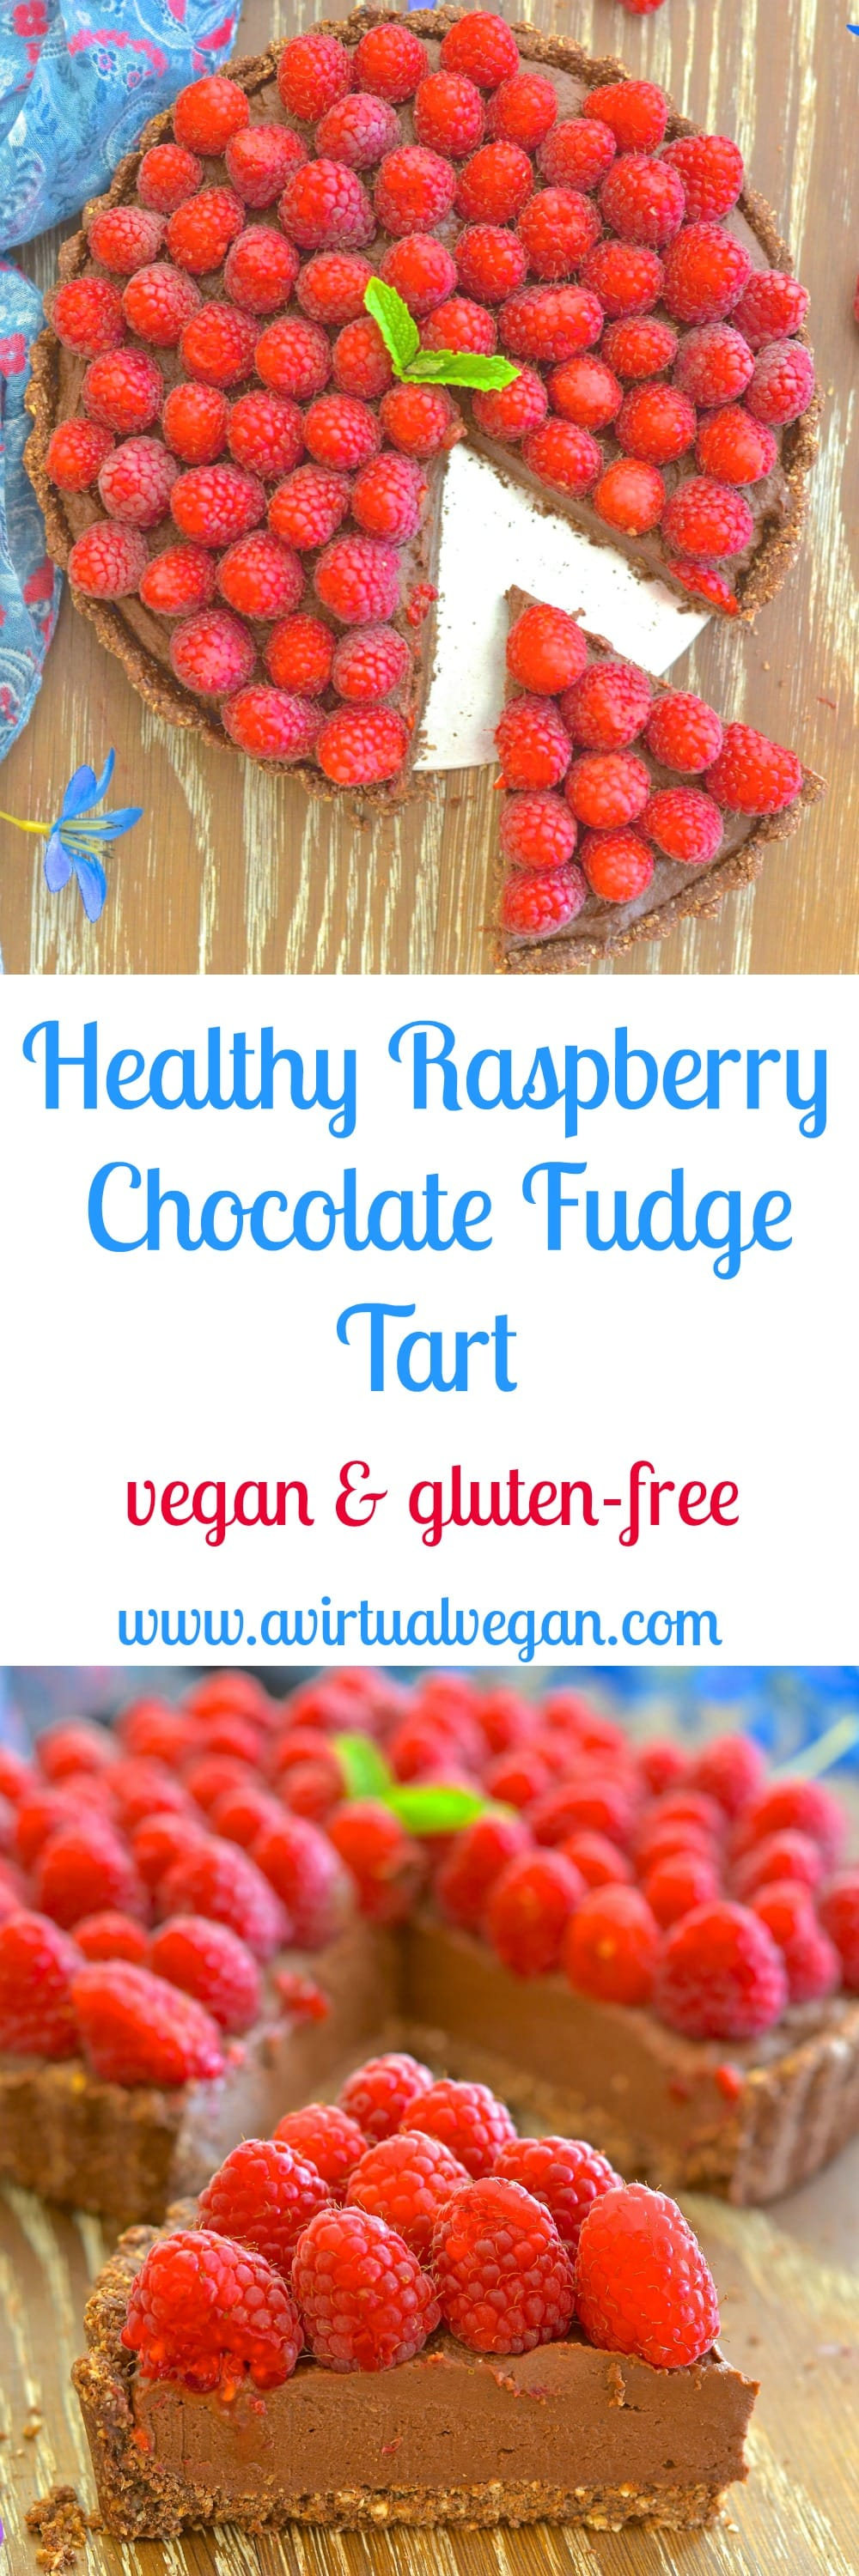 Want a dessert that looks & tastes decadent but is secretly healthy? I've got you covered with my decadent but Healthy Fudgy Chocolate Raspberry Tart.